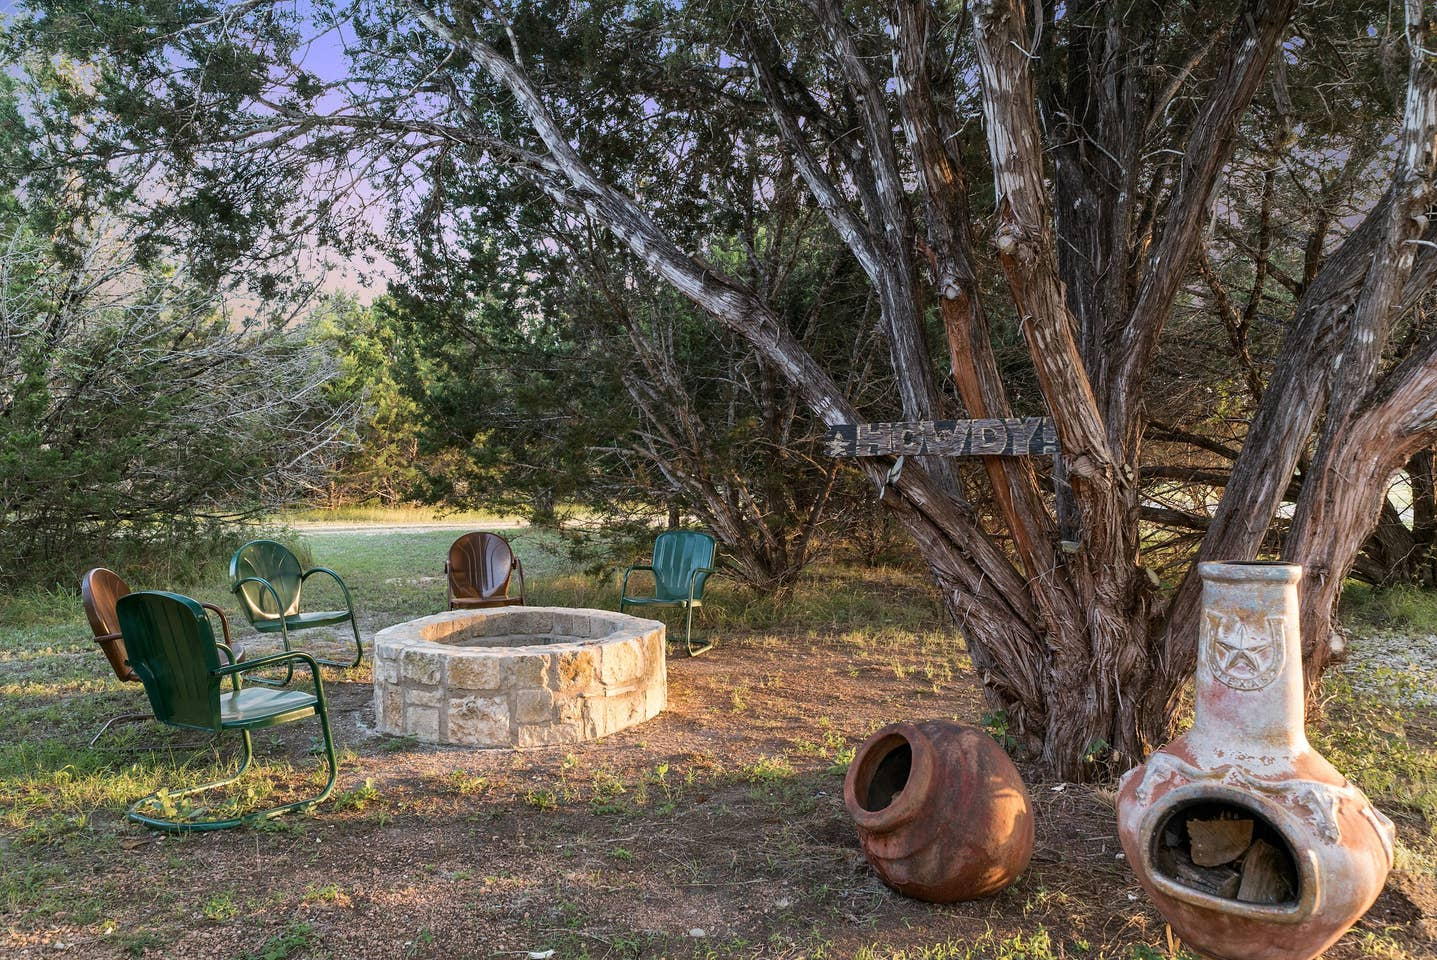 The shared fire pit and chimenea are perfect for roasting snacks, and meeting some of your fellow travelers.